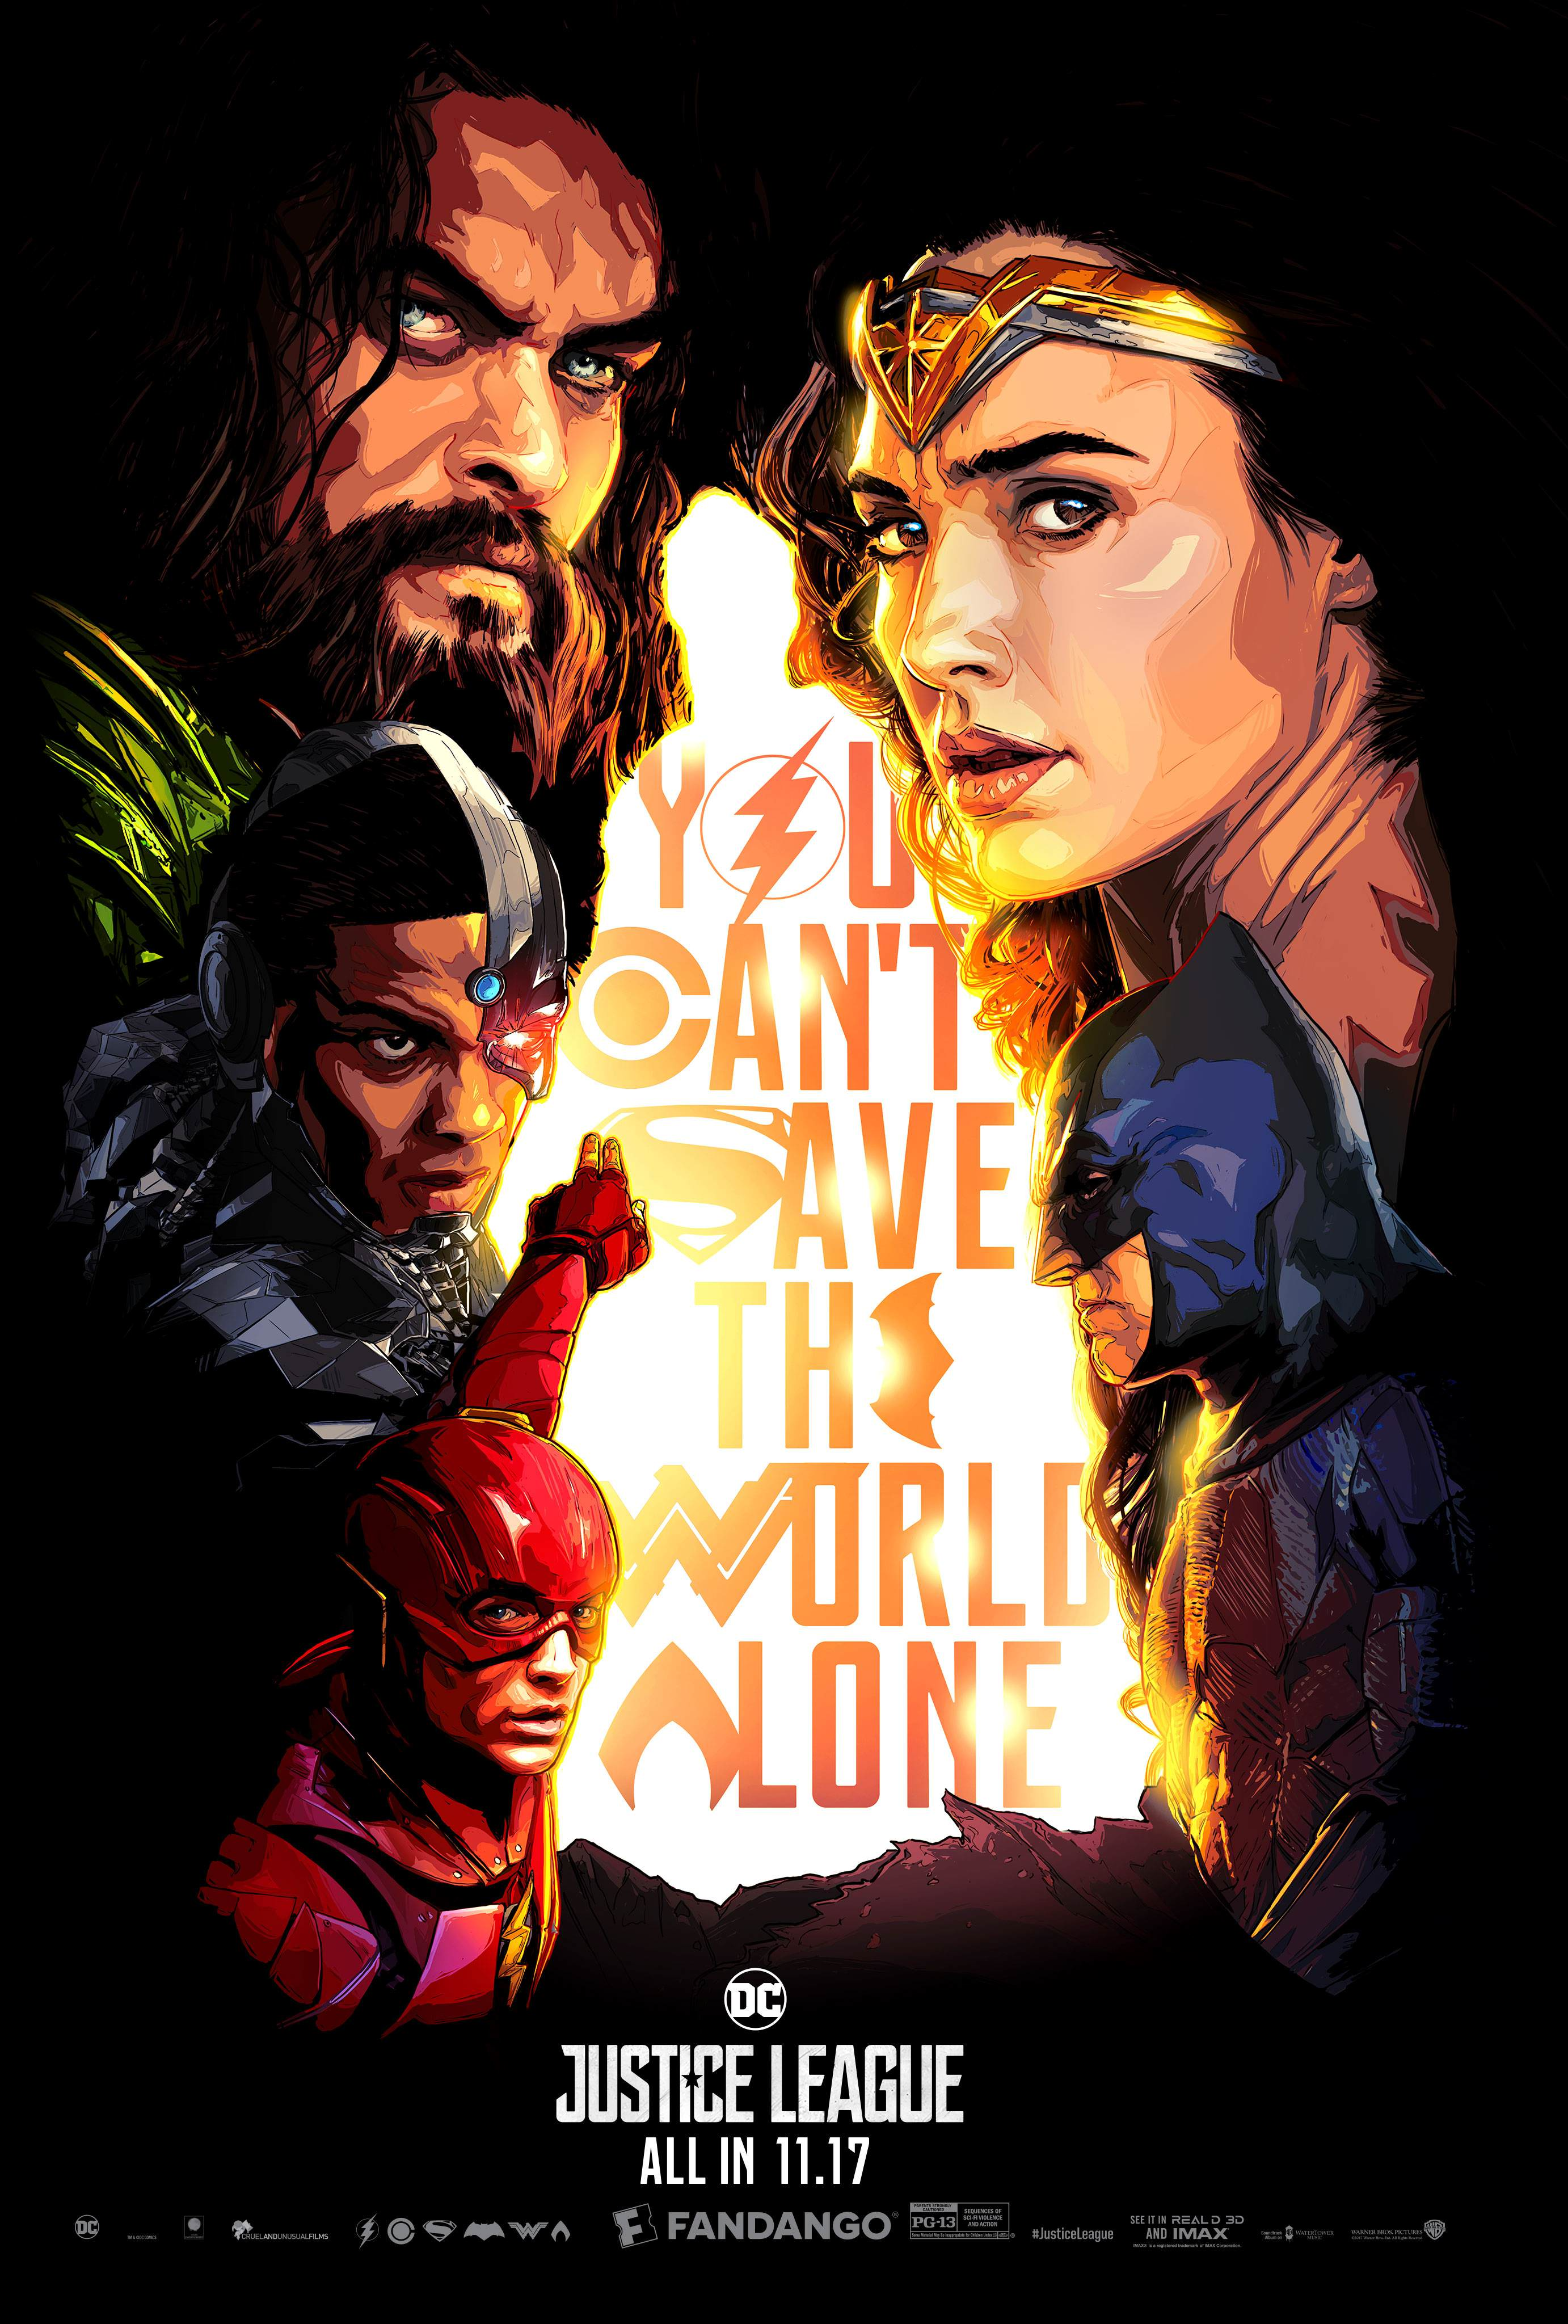 justice league movie images justice league (2017) poster hd